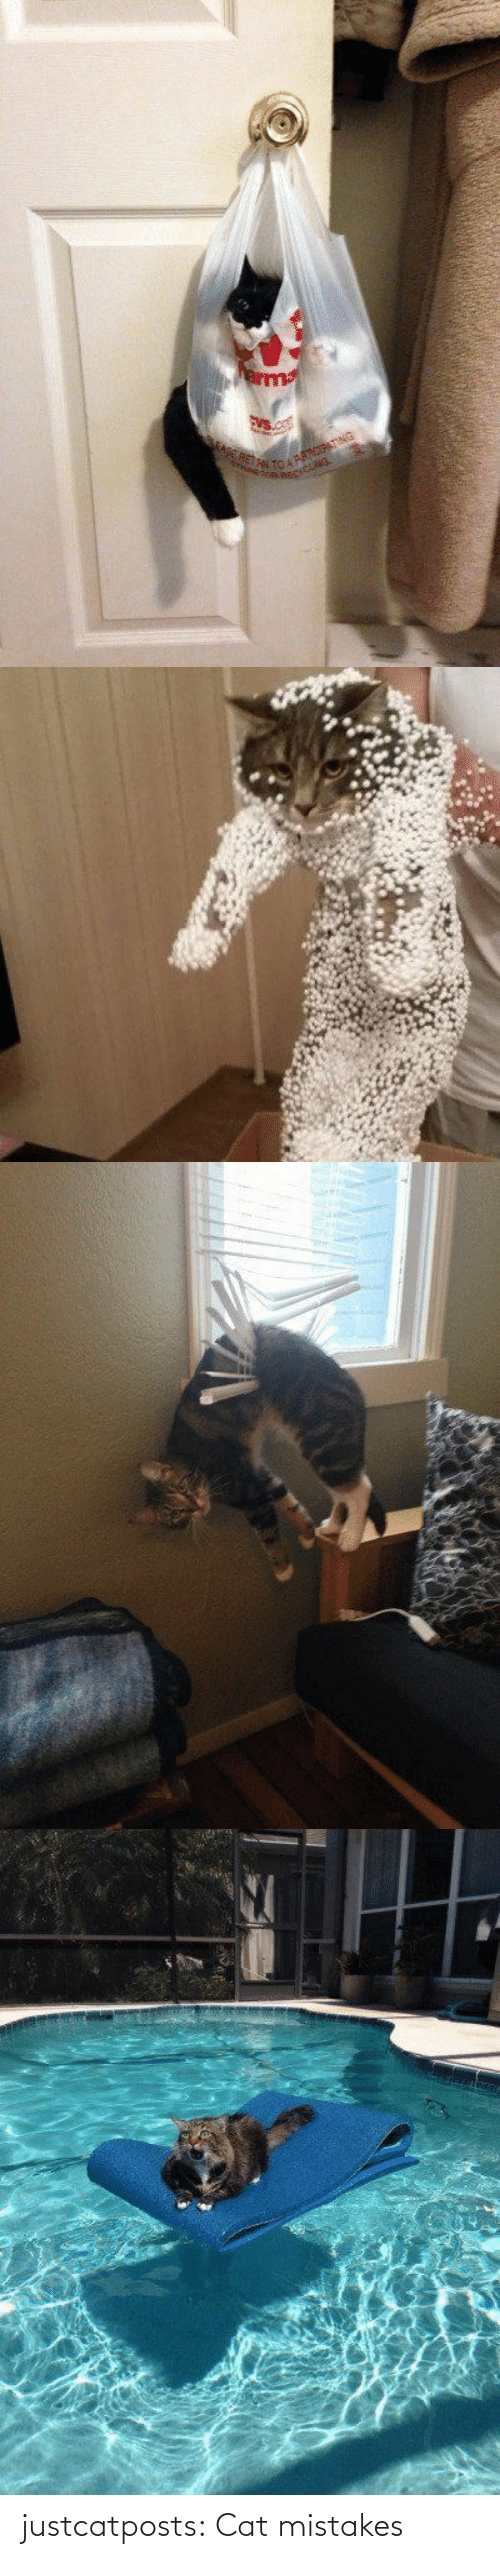 Mistakes: justcatposts:  Cat mistakes